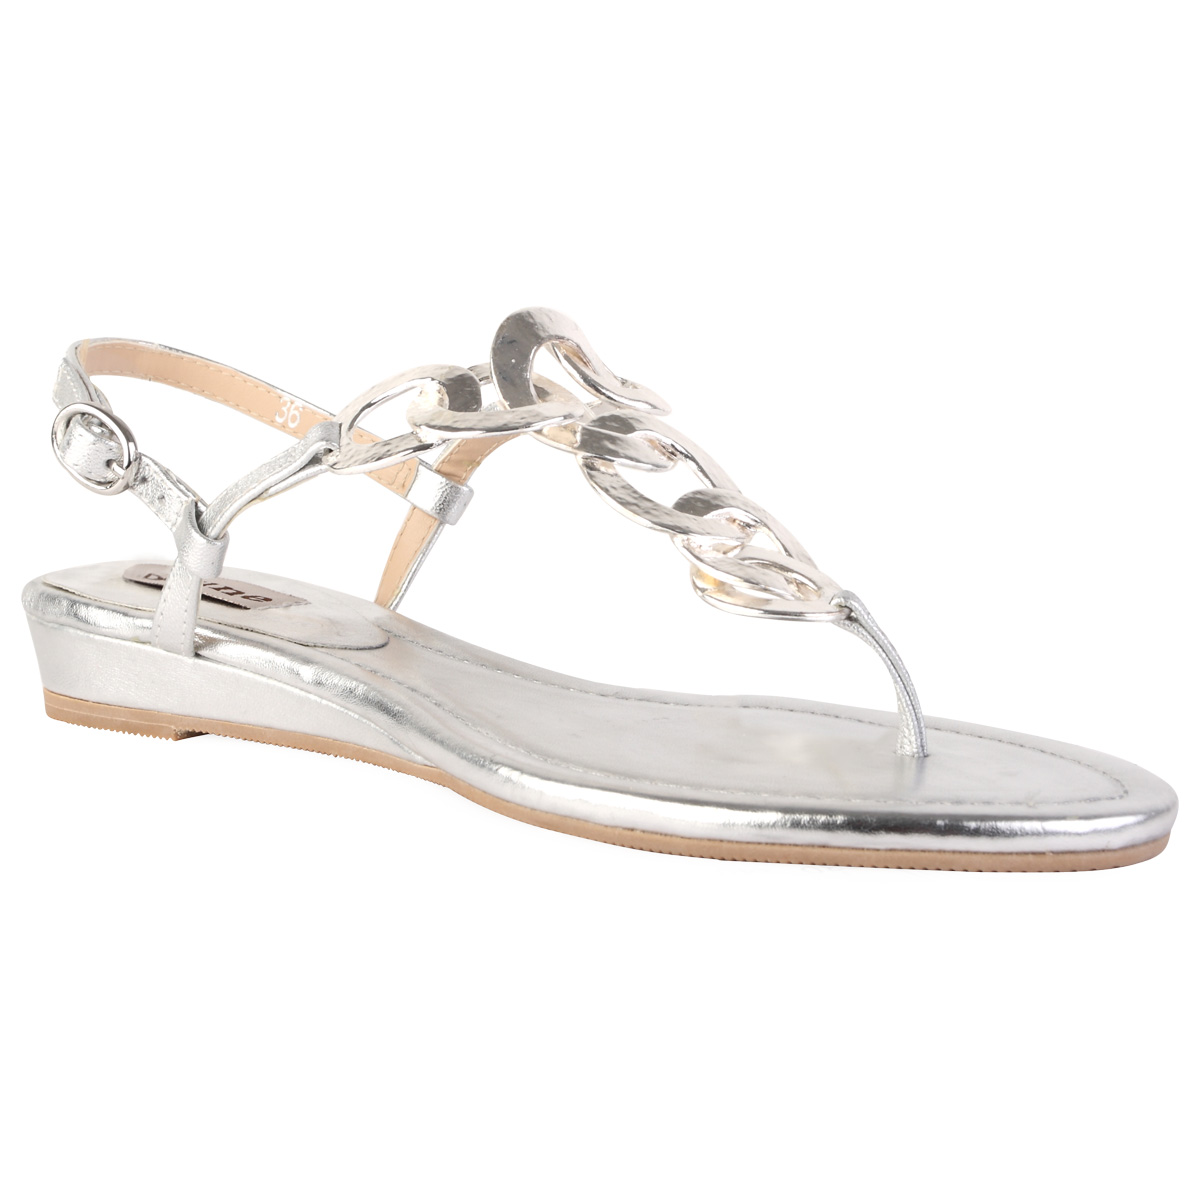 Silver Womens Sandals Sale: Save Up to 60% Off! Shop shopnew-5uel8qry.cf's huge selection of Silver Womens Sandals - Over styles available. FREE Shipping & Exchanges, and a .